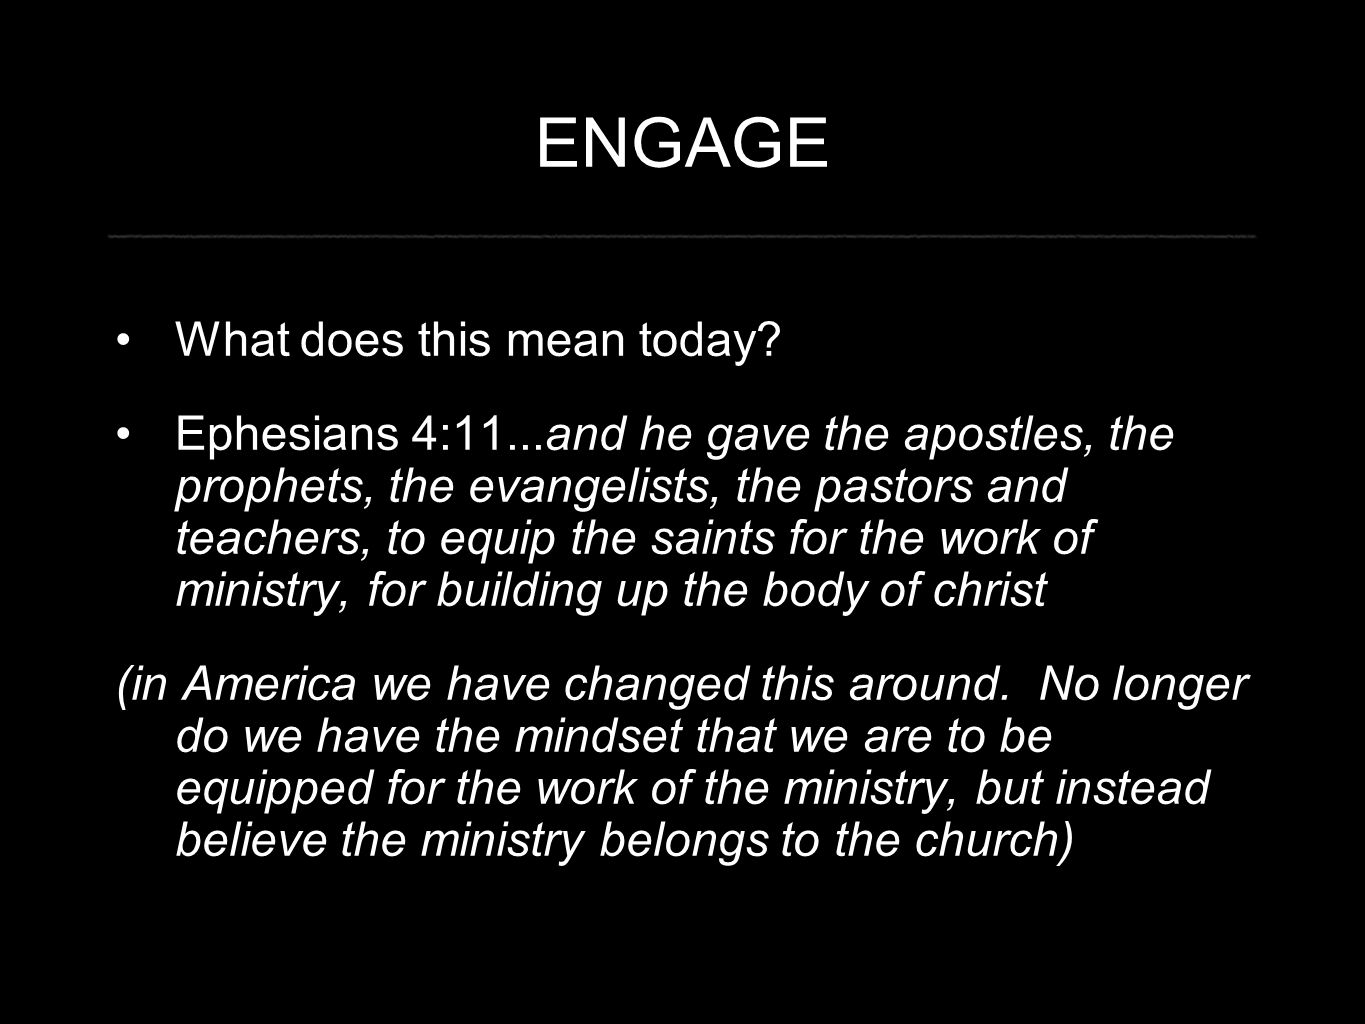 ENGAGE What does this mean today? Ephesians 4:11...and he gave the apostles, the prophets, the evangelists, the pastors and teachers, to equip the sai